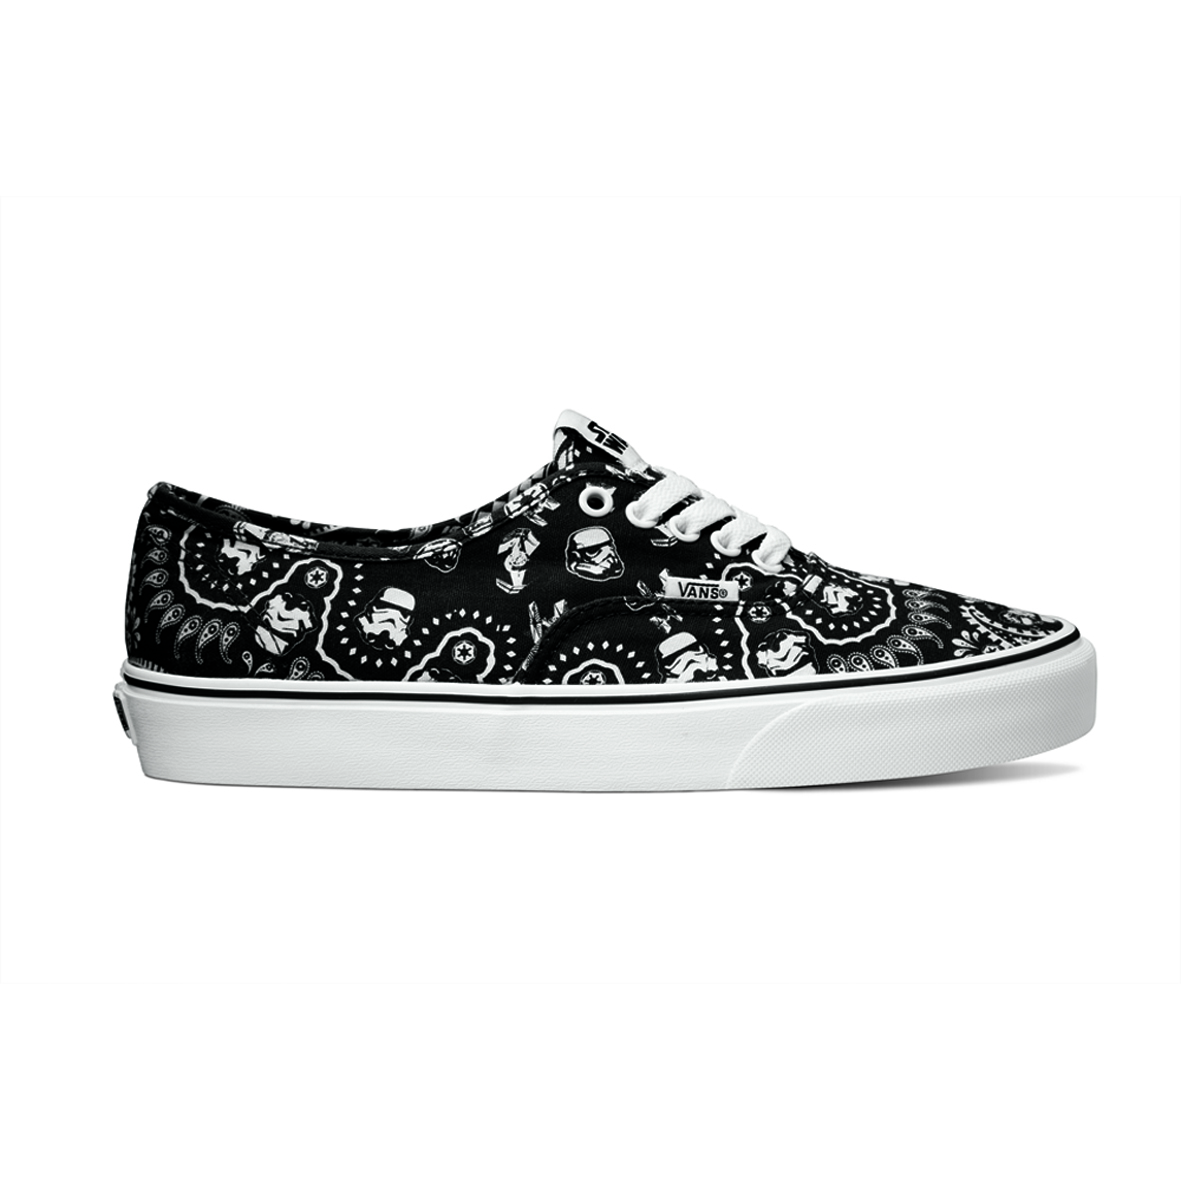 vans star wars zaino